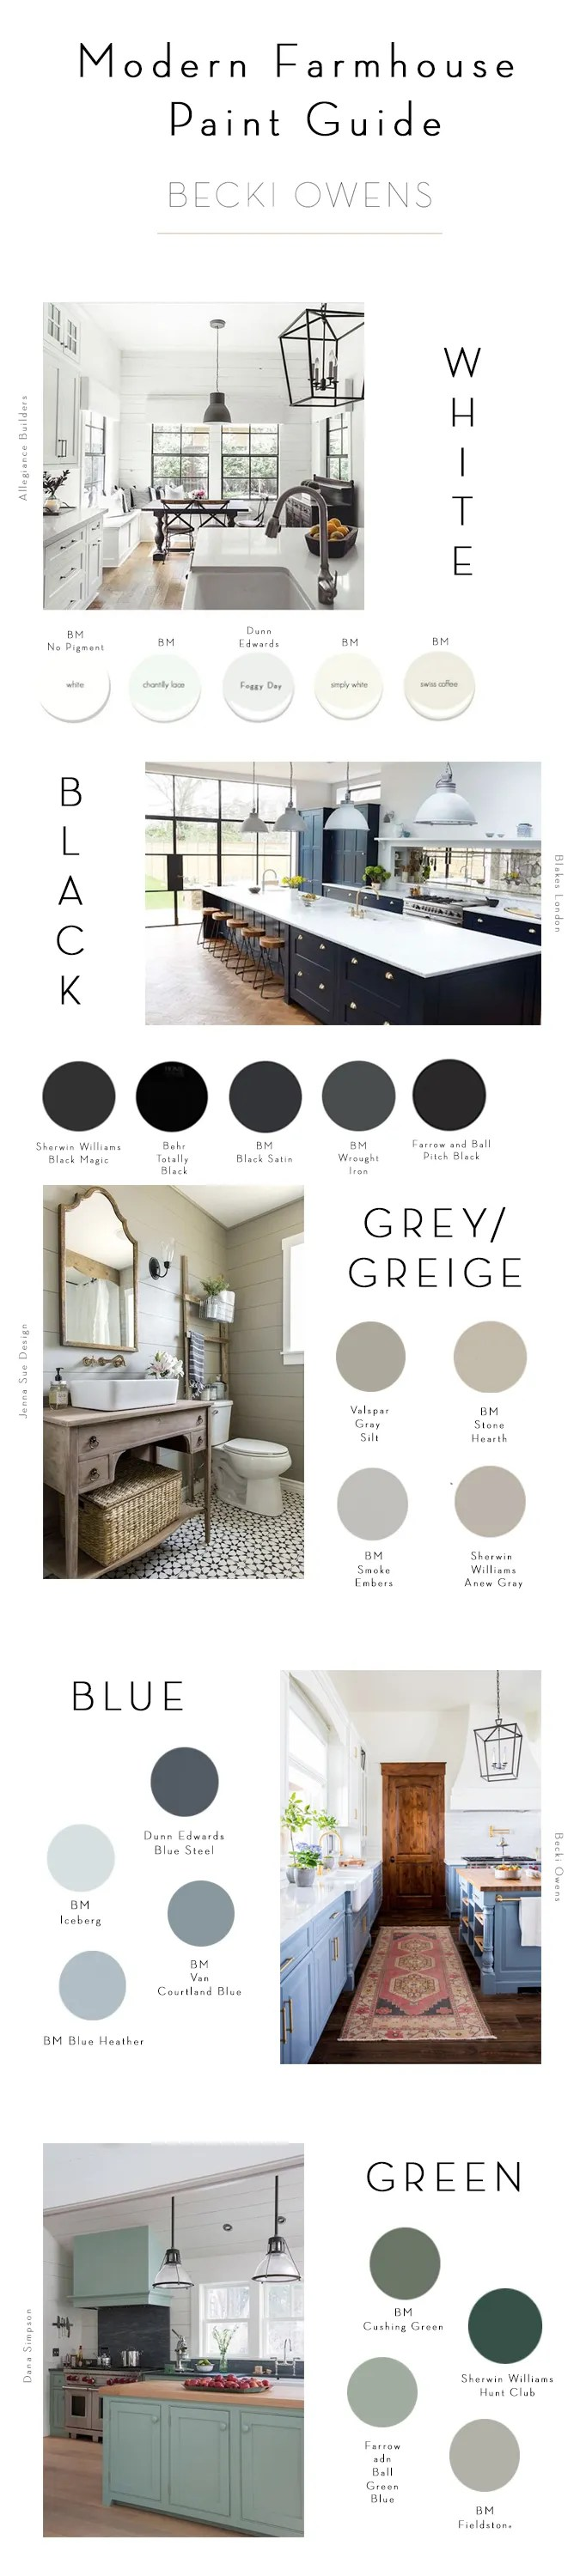 modern farmhouse paint guide